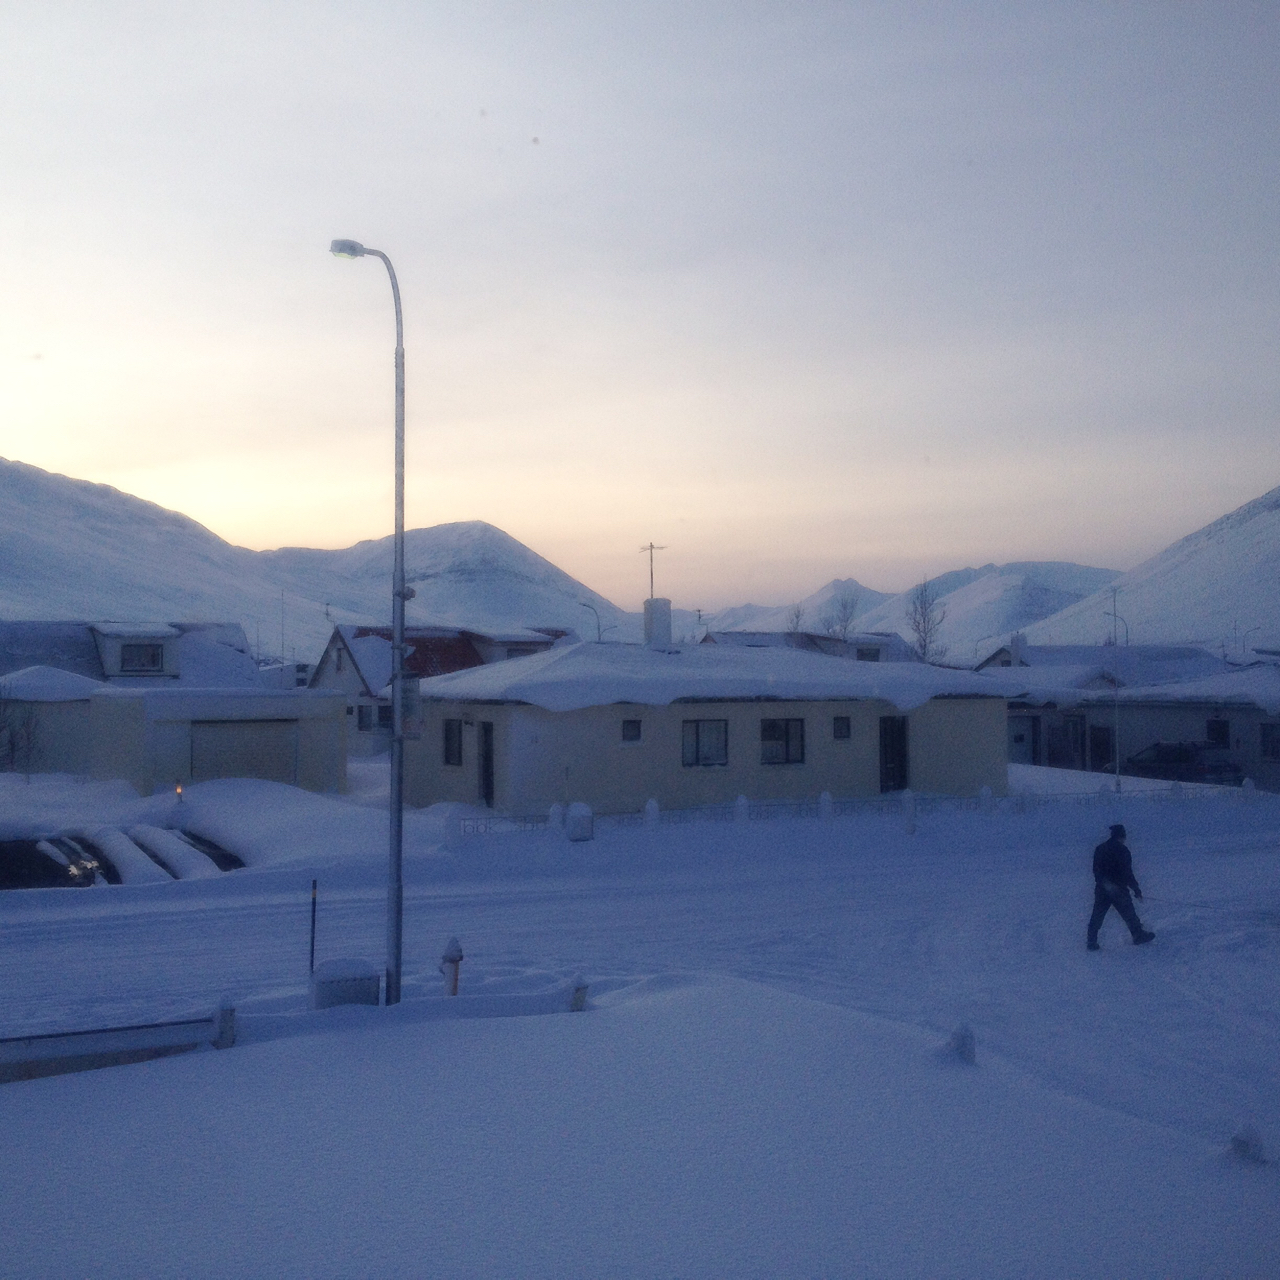 Good morning, from just below the Arctic Circle. In Iceland, it's the month of Þorri, the bleakest part of winter. It's a time for annual sacrificial feasts to the Norse thunder god Þór, for unrelenting wind, snow and sleet. In the small fishing town of Ólafsfjörður, the sun has only just returned from a 72 day hiatus behind a ring of black volcanic mountains. I'm Nastasya Tay ( @nastasyatay ), a journalist usually based in southernmost Africa, but I've been living in this town of 800 as an artist-in-residence for nearly 2 months, with photographer  @yiannishadjiaslanis , documenting how light and dark come together here - in people's lives, as well as skies - a book project that's part of our art/documentary collaboration,  @theextra.ordinary . This week, I'll be giving you a glimpse behind the double glazing, at the secret lives lived indoors, amid the shadows and the snow. But we begin by looking out, through my living room window: a late-morning sunrise last week, when gale force winds weren't rattling the windows in the morning pitch-darkness.